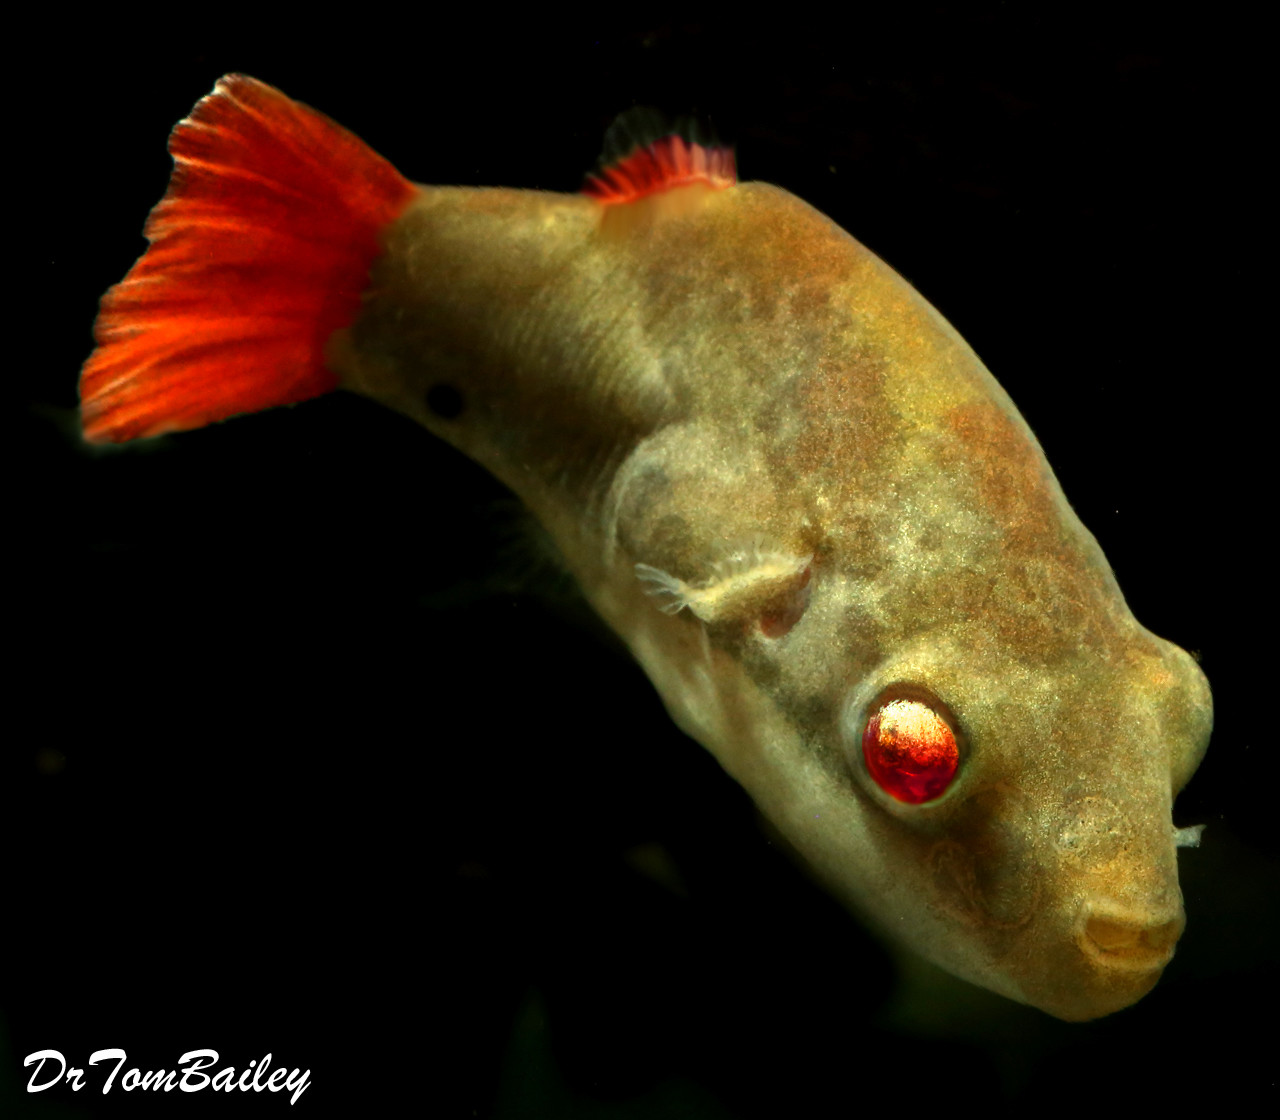 "Premium MALE Freshwater Redtail Red Eye Dwarf Pufferfish, 1"" to 1.5"" long"